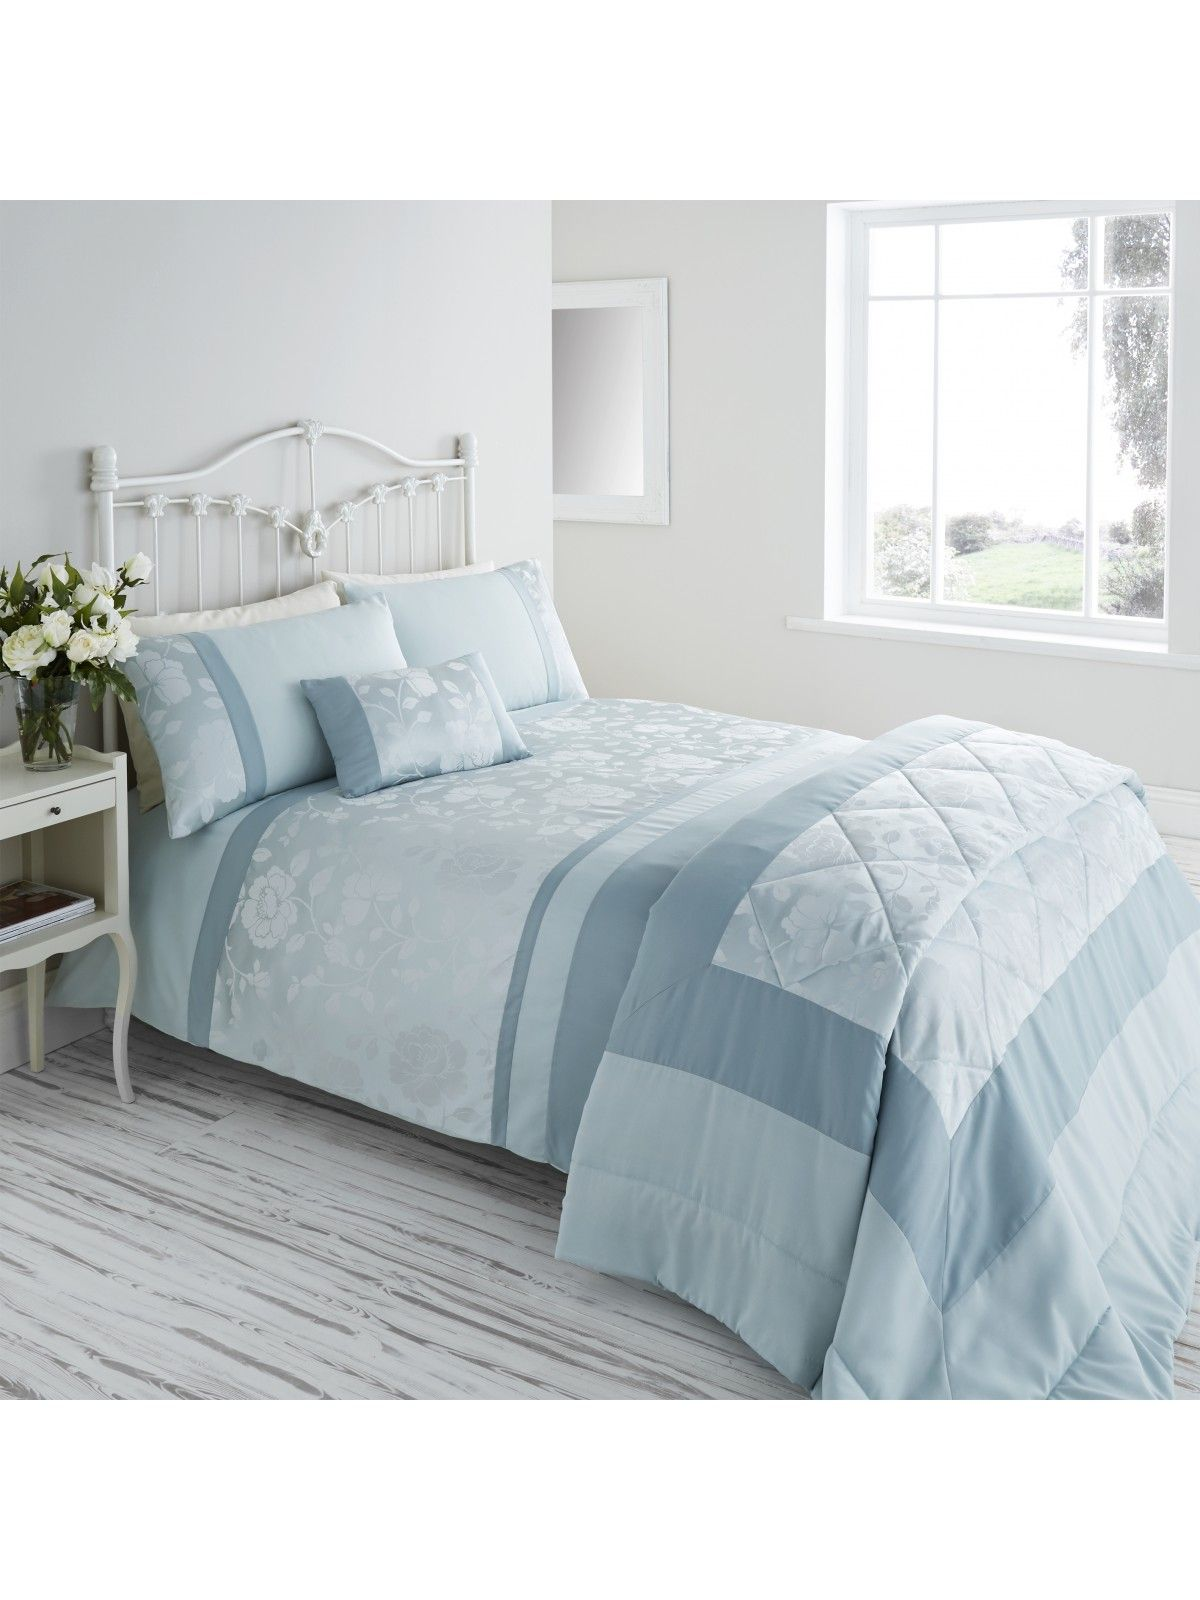 Add Clical Elegance To Your Home With Our Ponden Range Penelope Jacquard Panel Duvet Set Has Comb